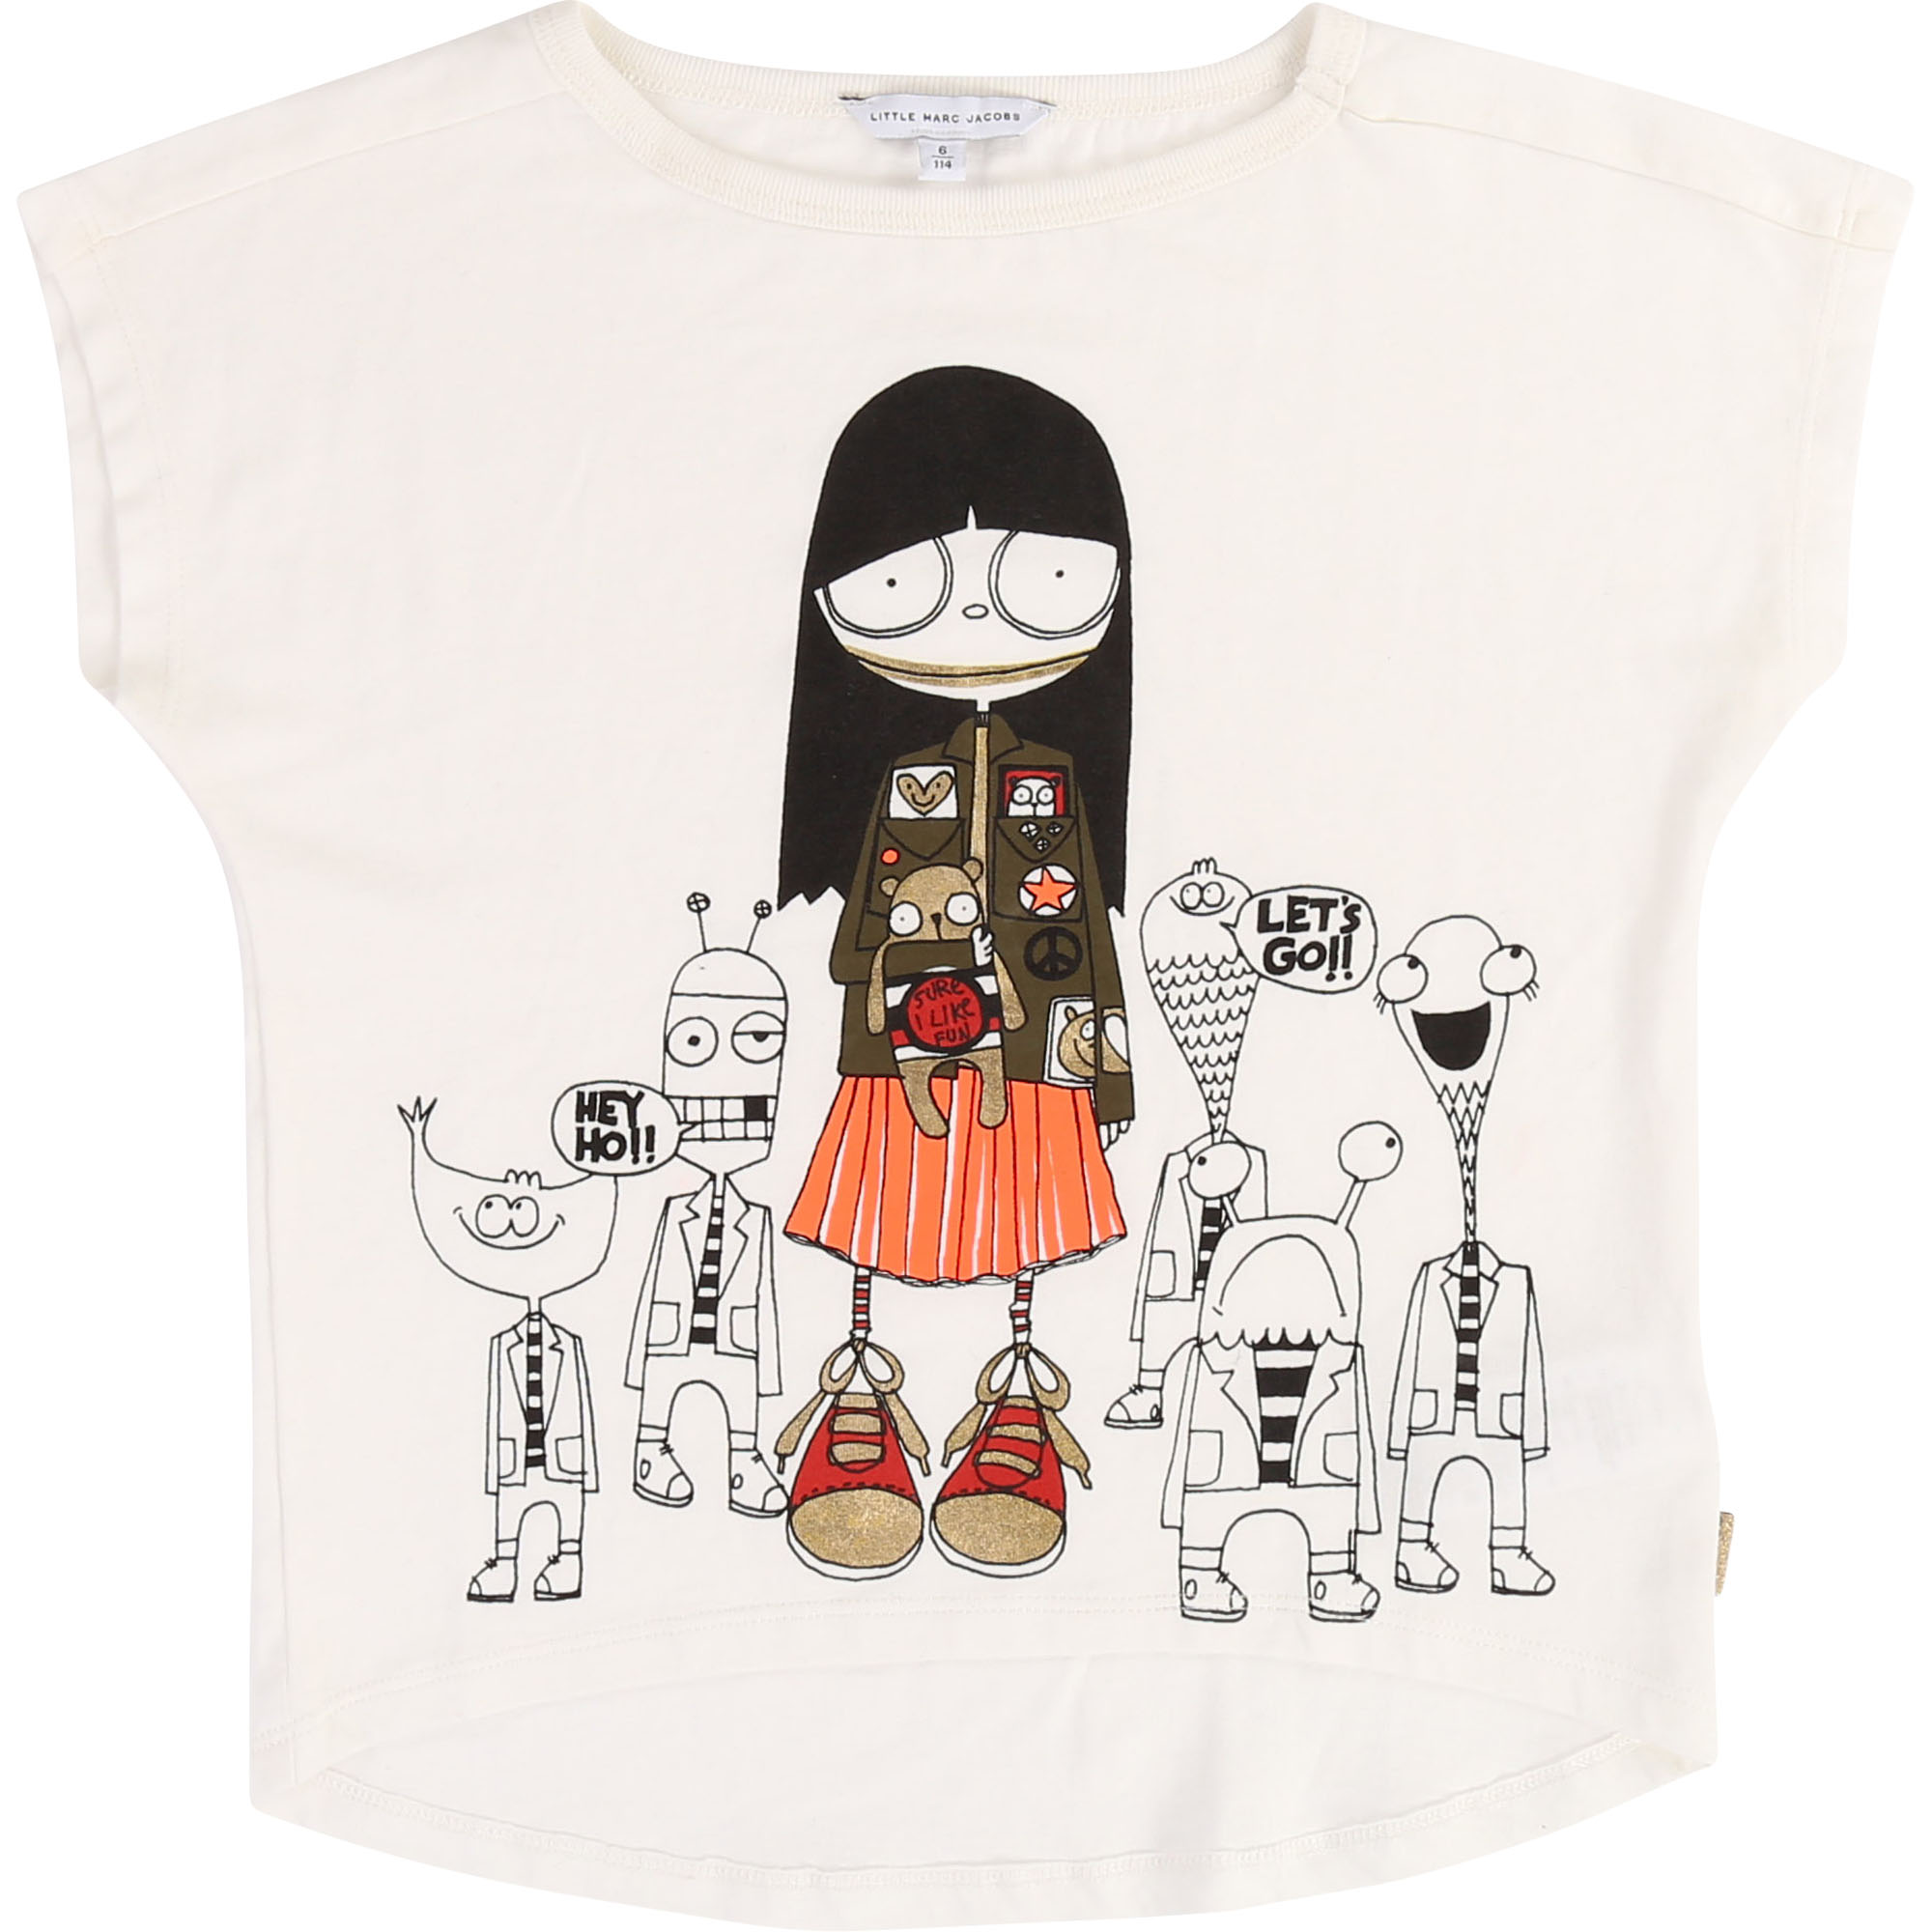 T-shirt in cotton and modal LITTLE MARC JACOBS for GIRL